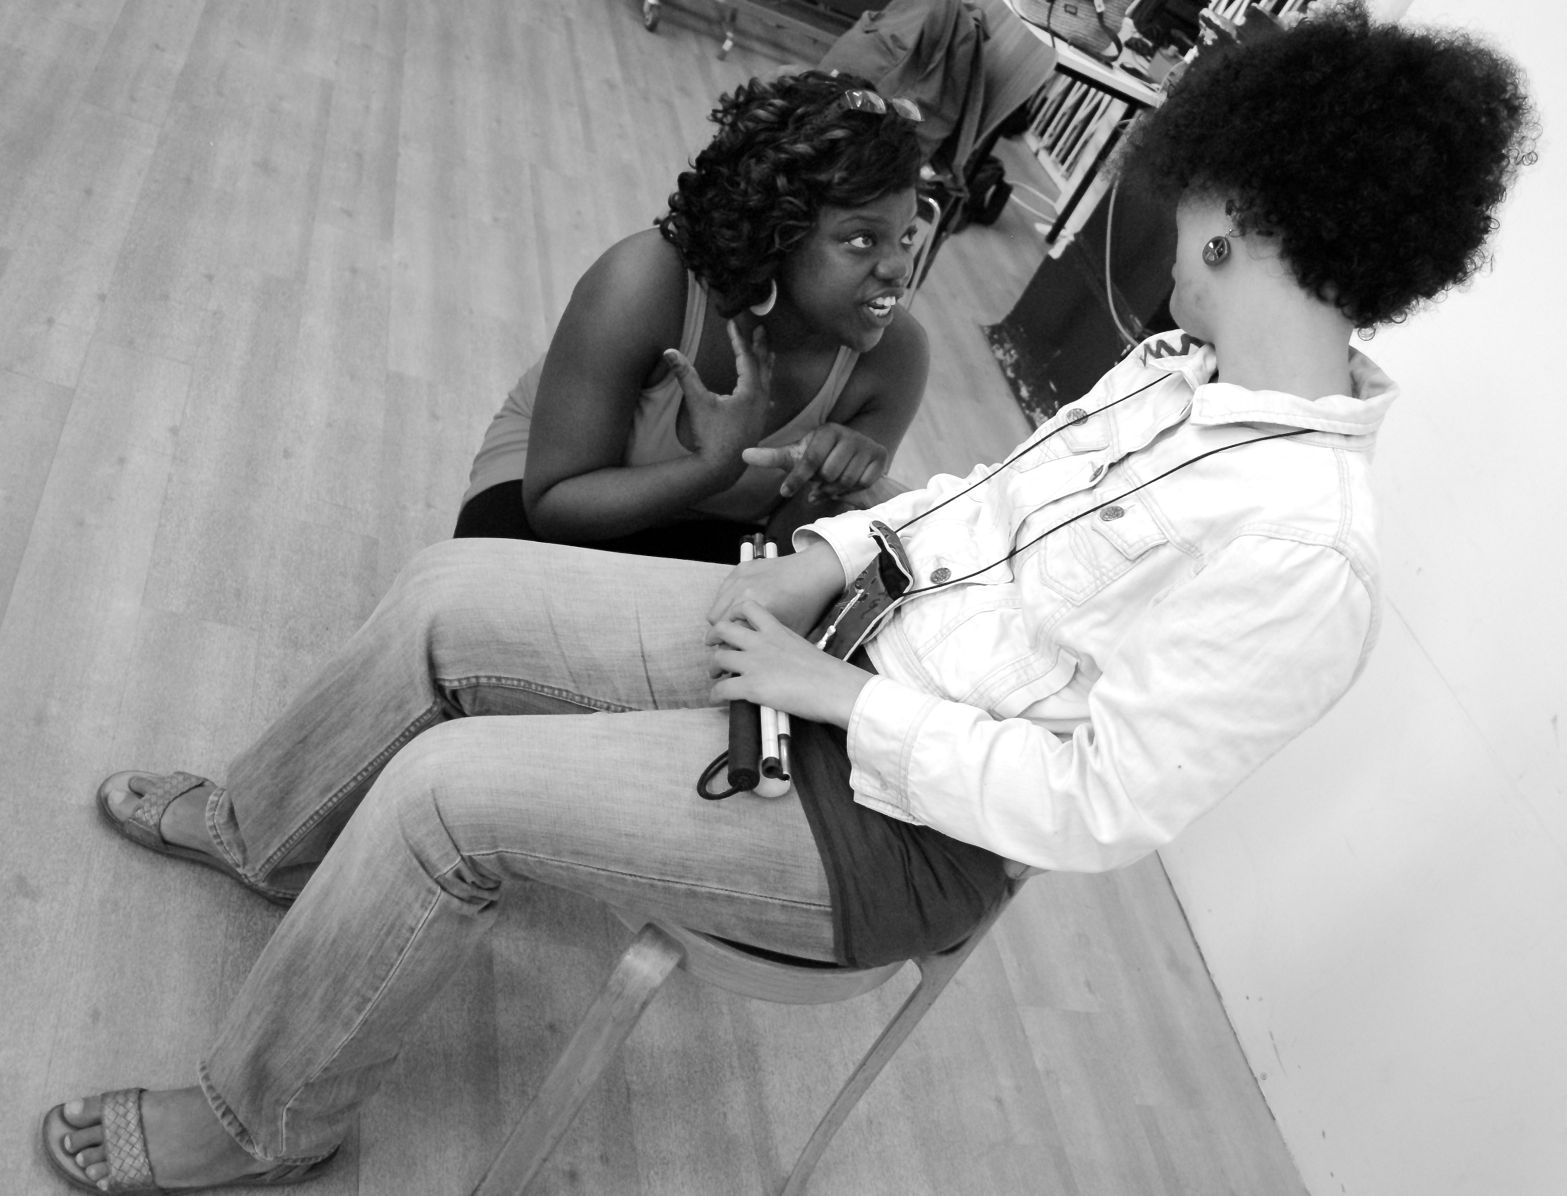 Anita, the assistant facilitator, squats down to talk to one of the participants who is seated looking down at her. Anita's face is animated as she gestures towards herself with one hand. Black and white picture